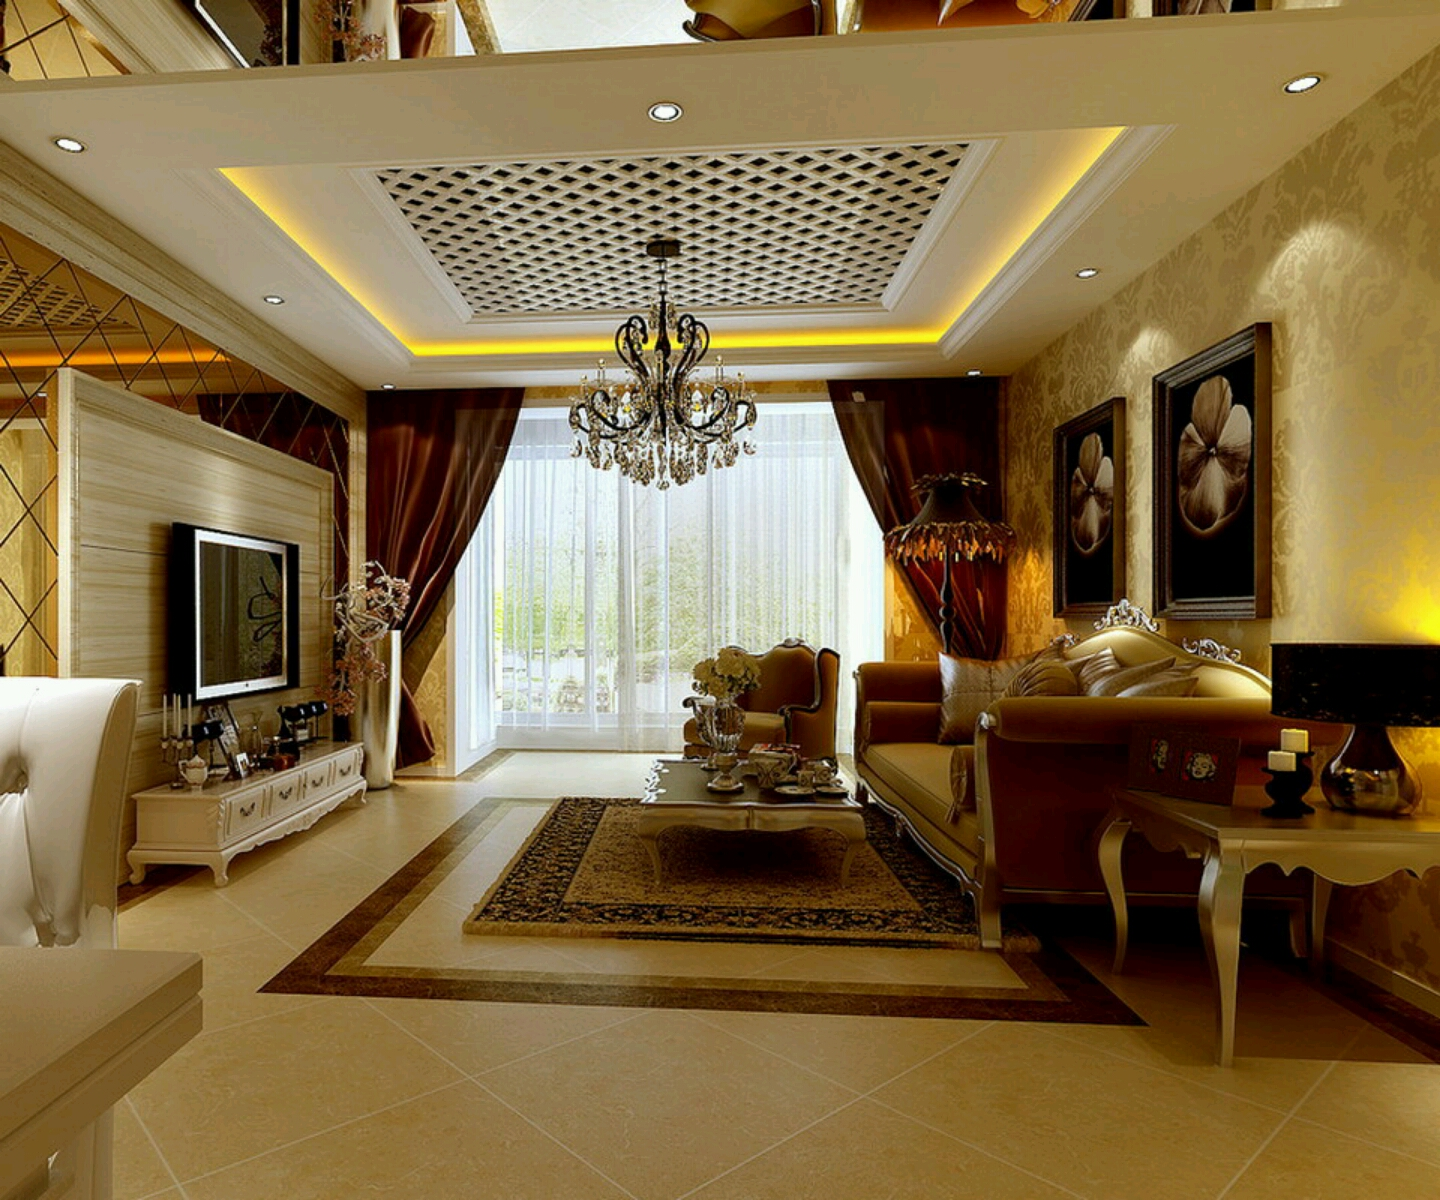 Interior Design Ideas For Home: Luxury Homes Interior Decoration Living Room Designs Ideas